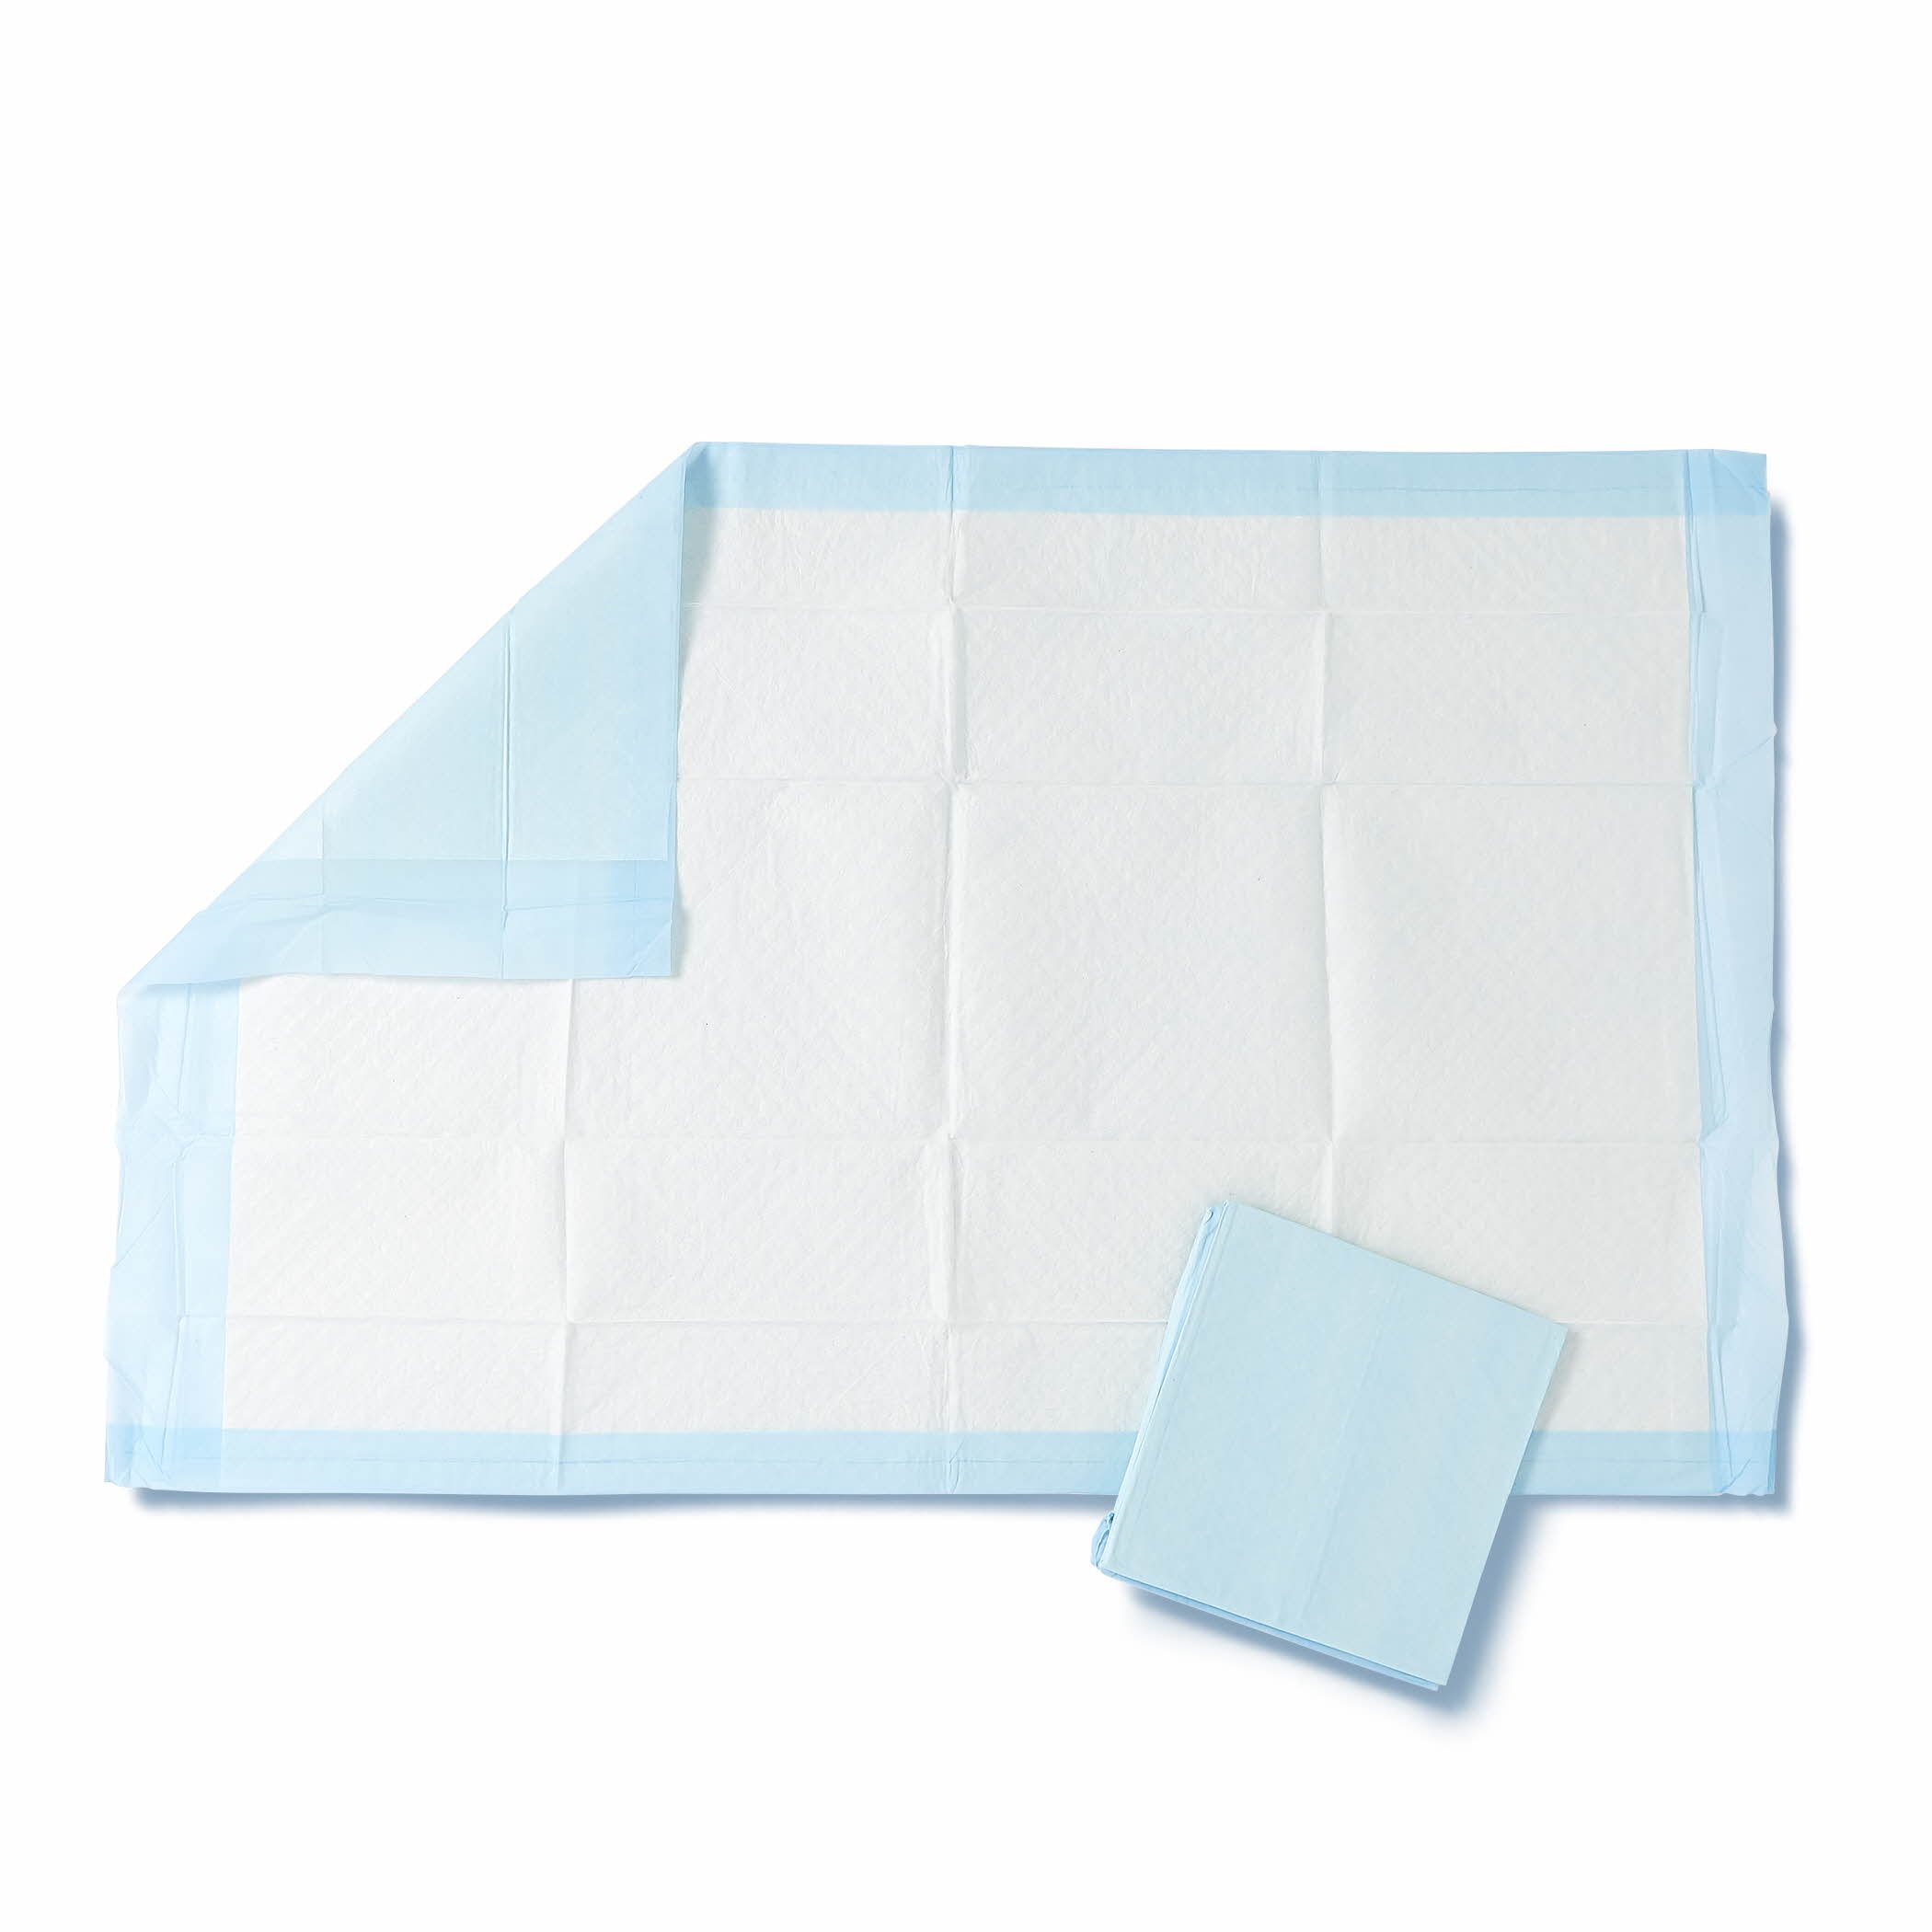 Medline Quilted Basic Disposable Blue Underpad, 23'' x 36'' for Incontinence, Furniture Protection or Pet Pads (Pack of 150) by Medline (Image #2)